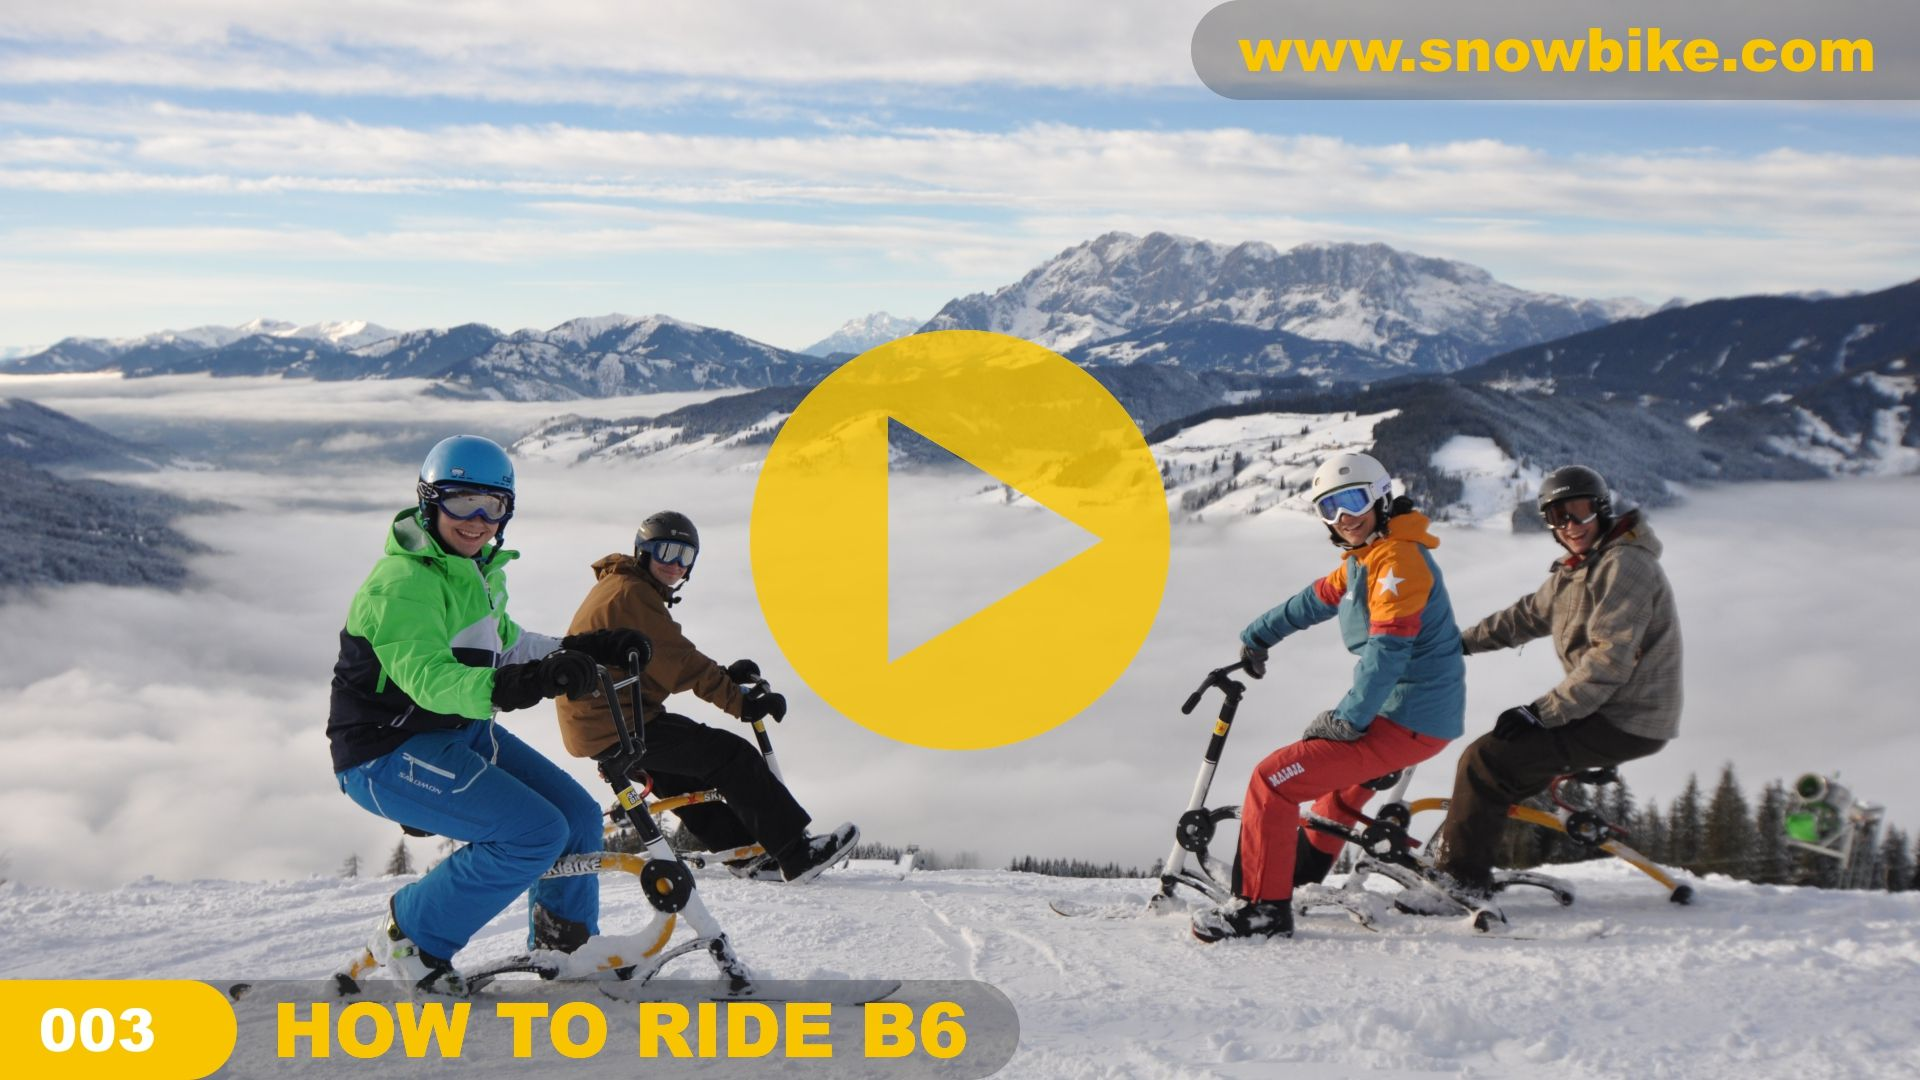 snowbike-basics-how-to-ride-b6-cover8808639C-40E0-9BB3-F59E-449B4D8F486E.jpg